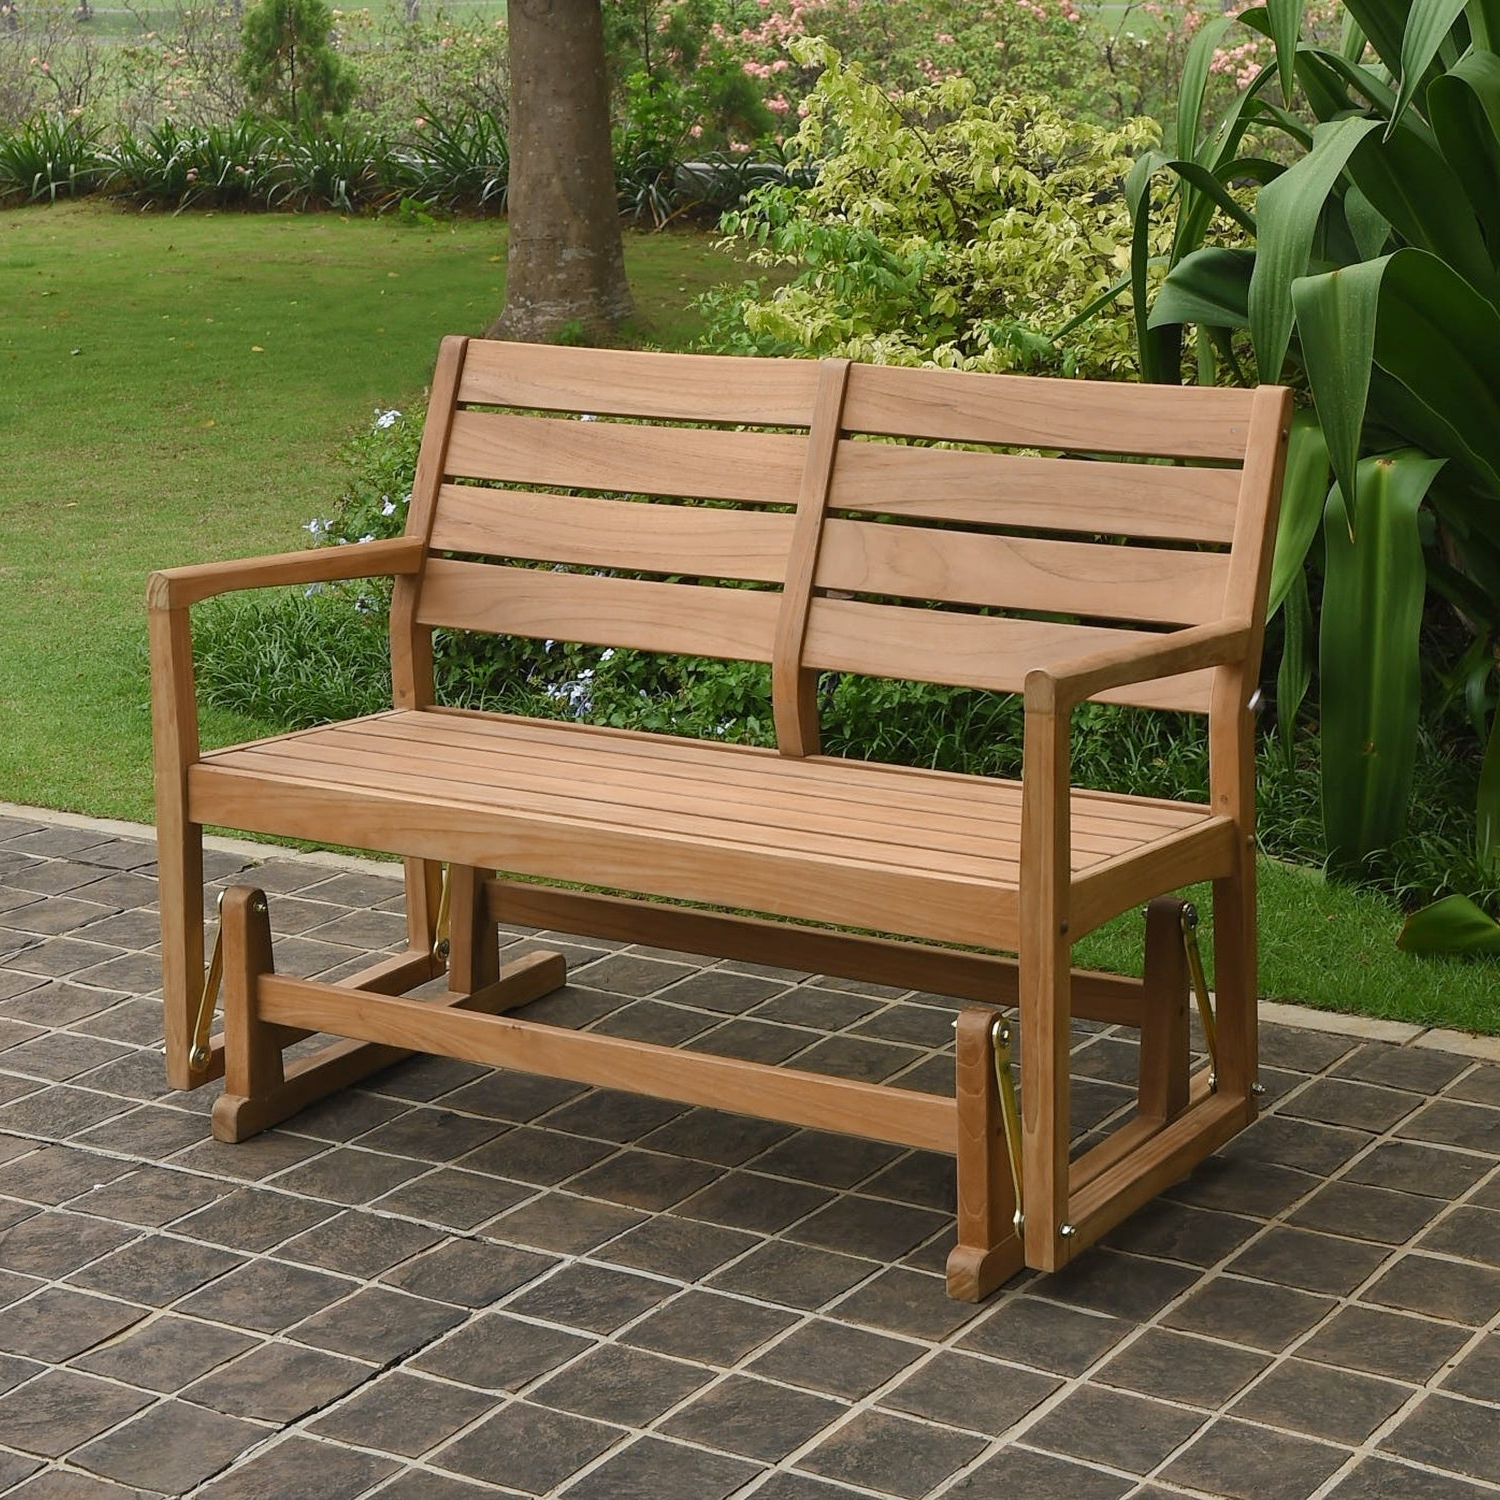 Most Popular Cambridge Casual Andrea Teak Glider Bench Pertaining To Teak Glider Benches (View 7 of 30)